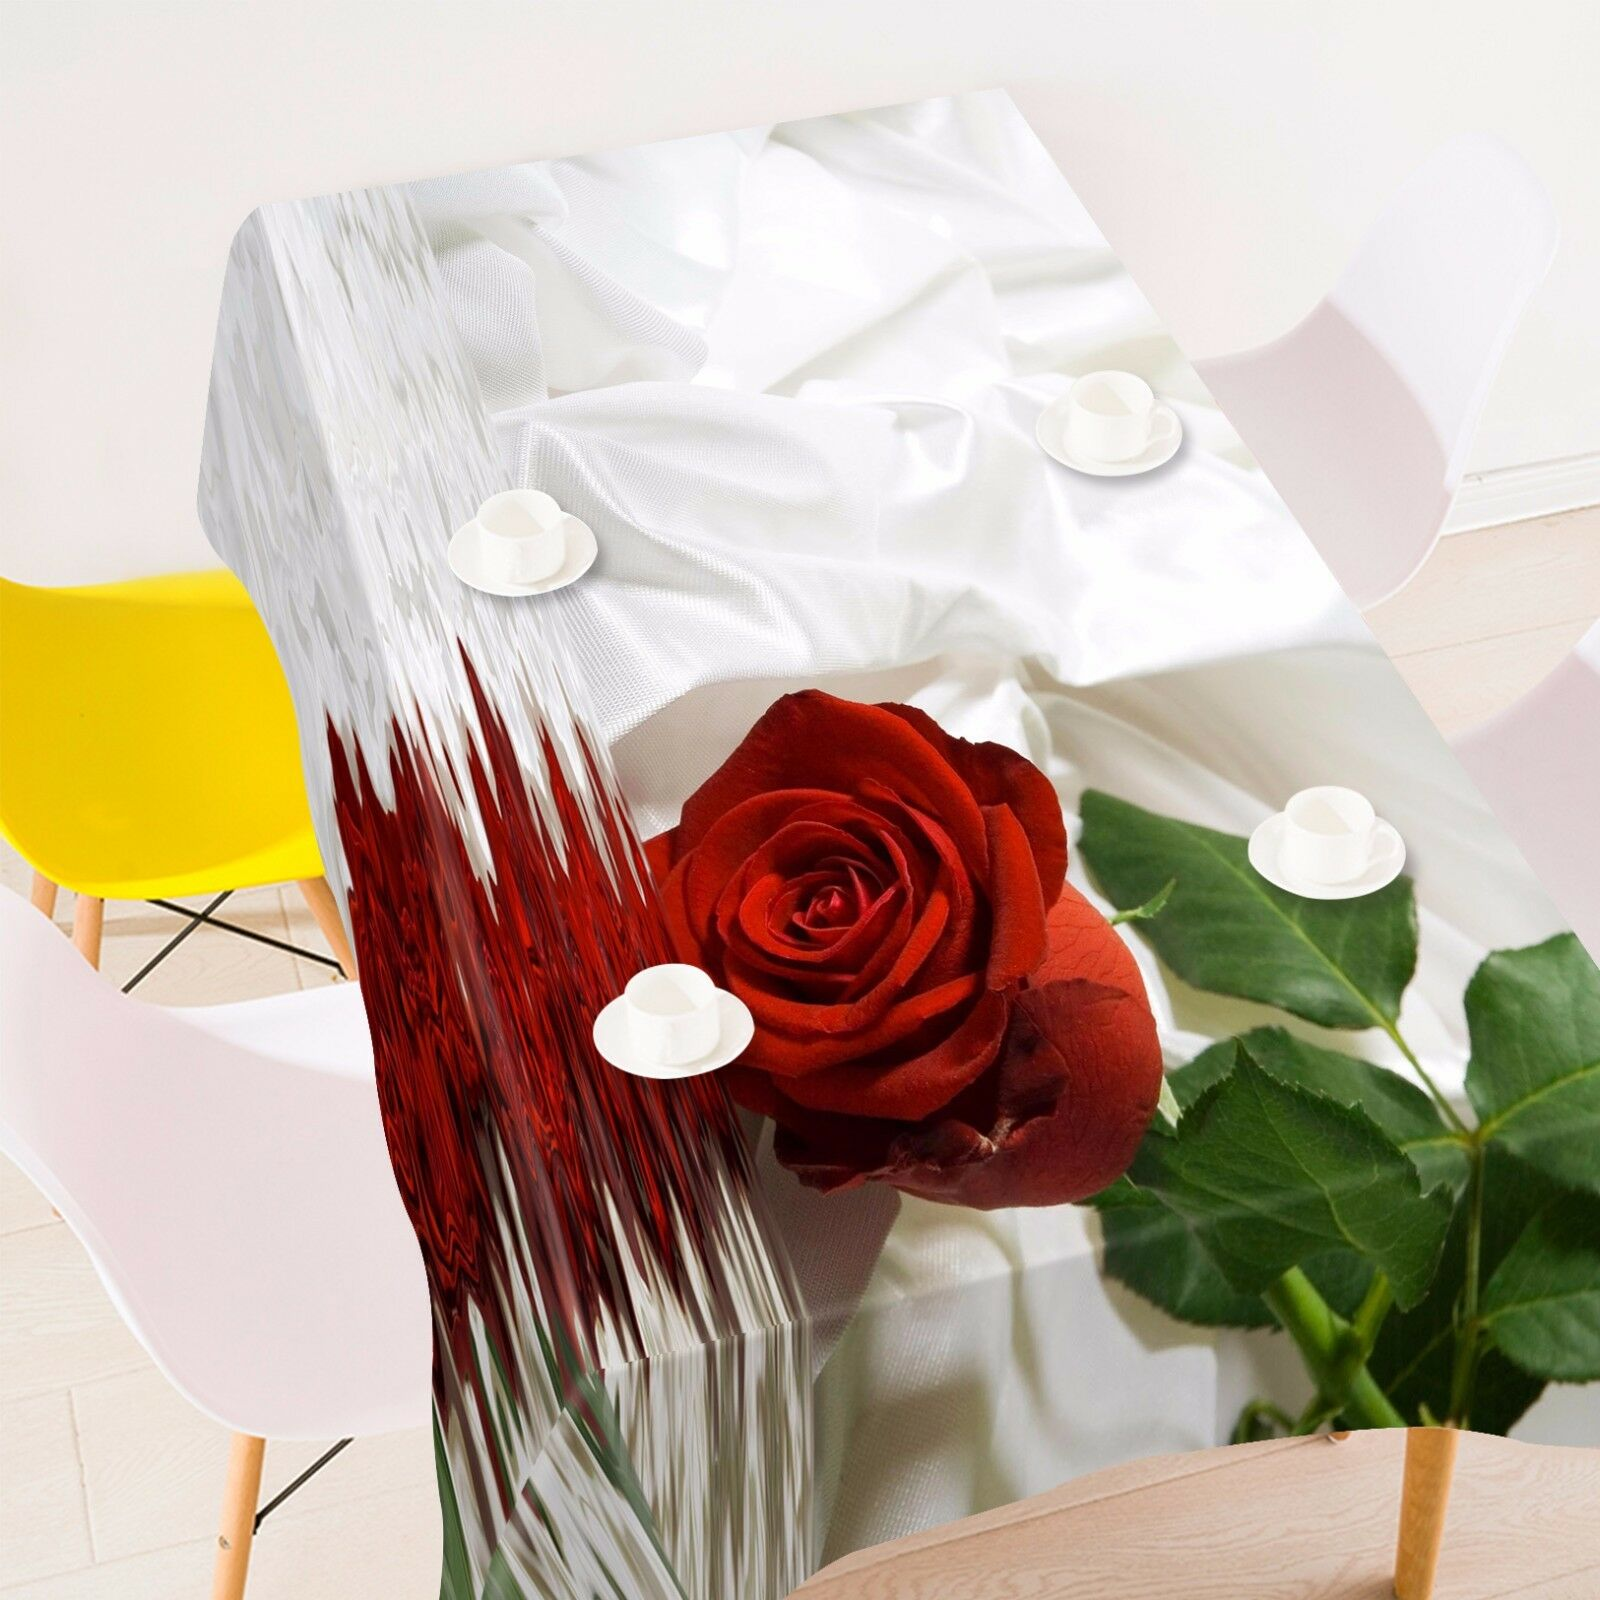 3D Rose 889 Tablecloth Table Cover Cloth Birthday Party Event AJ WALLPAPER AU